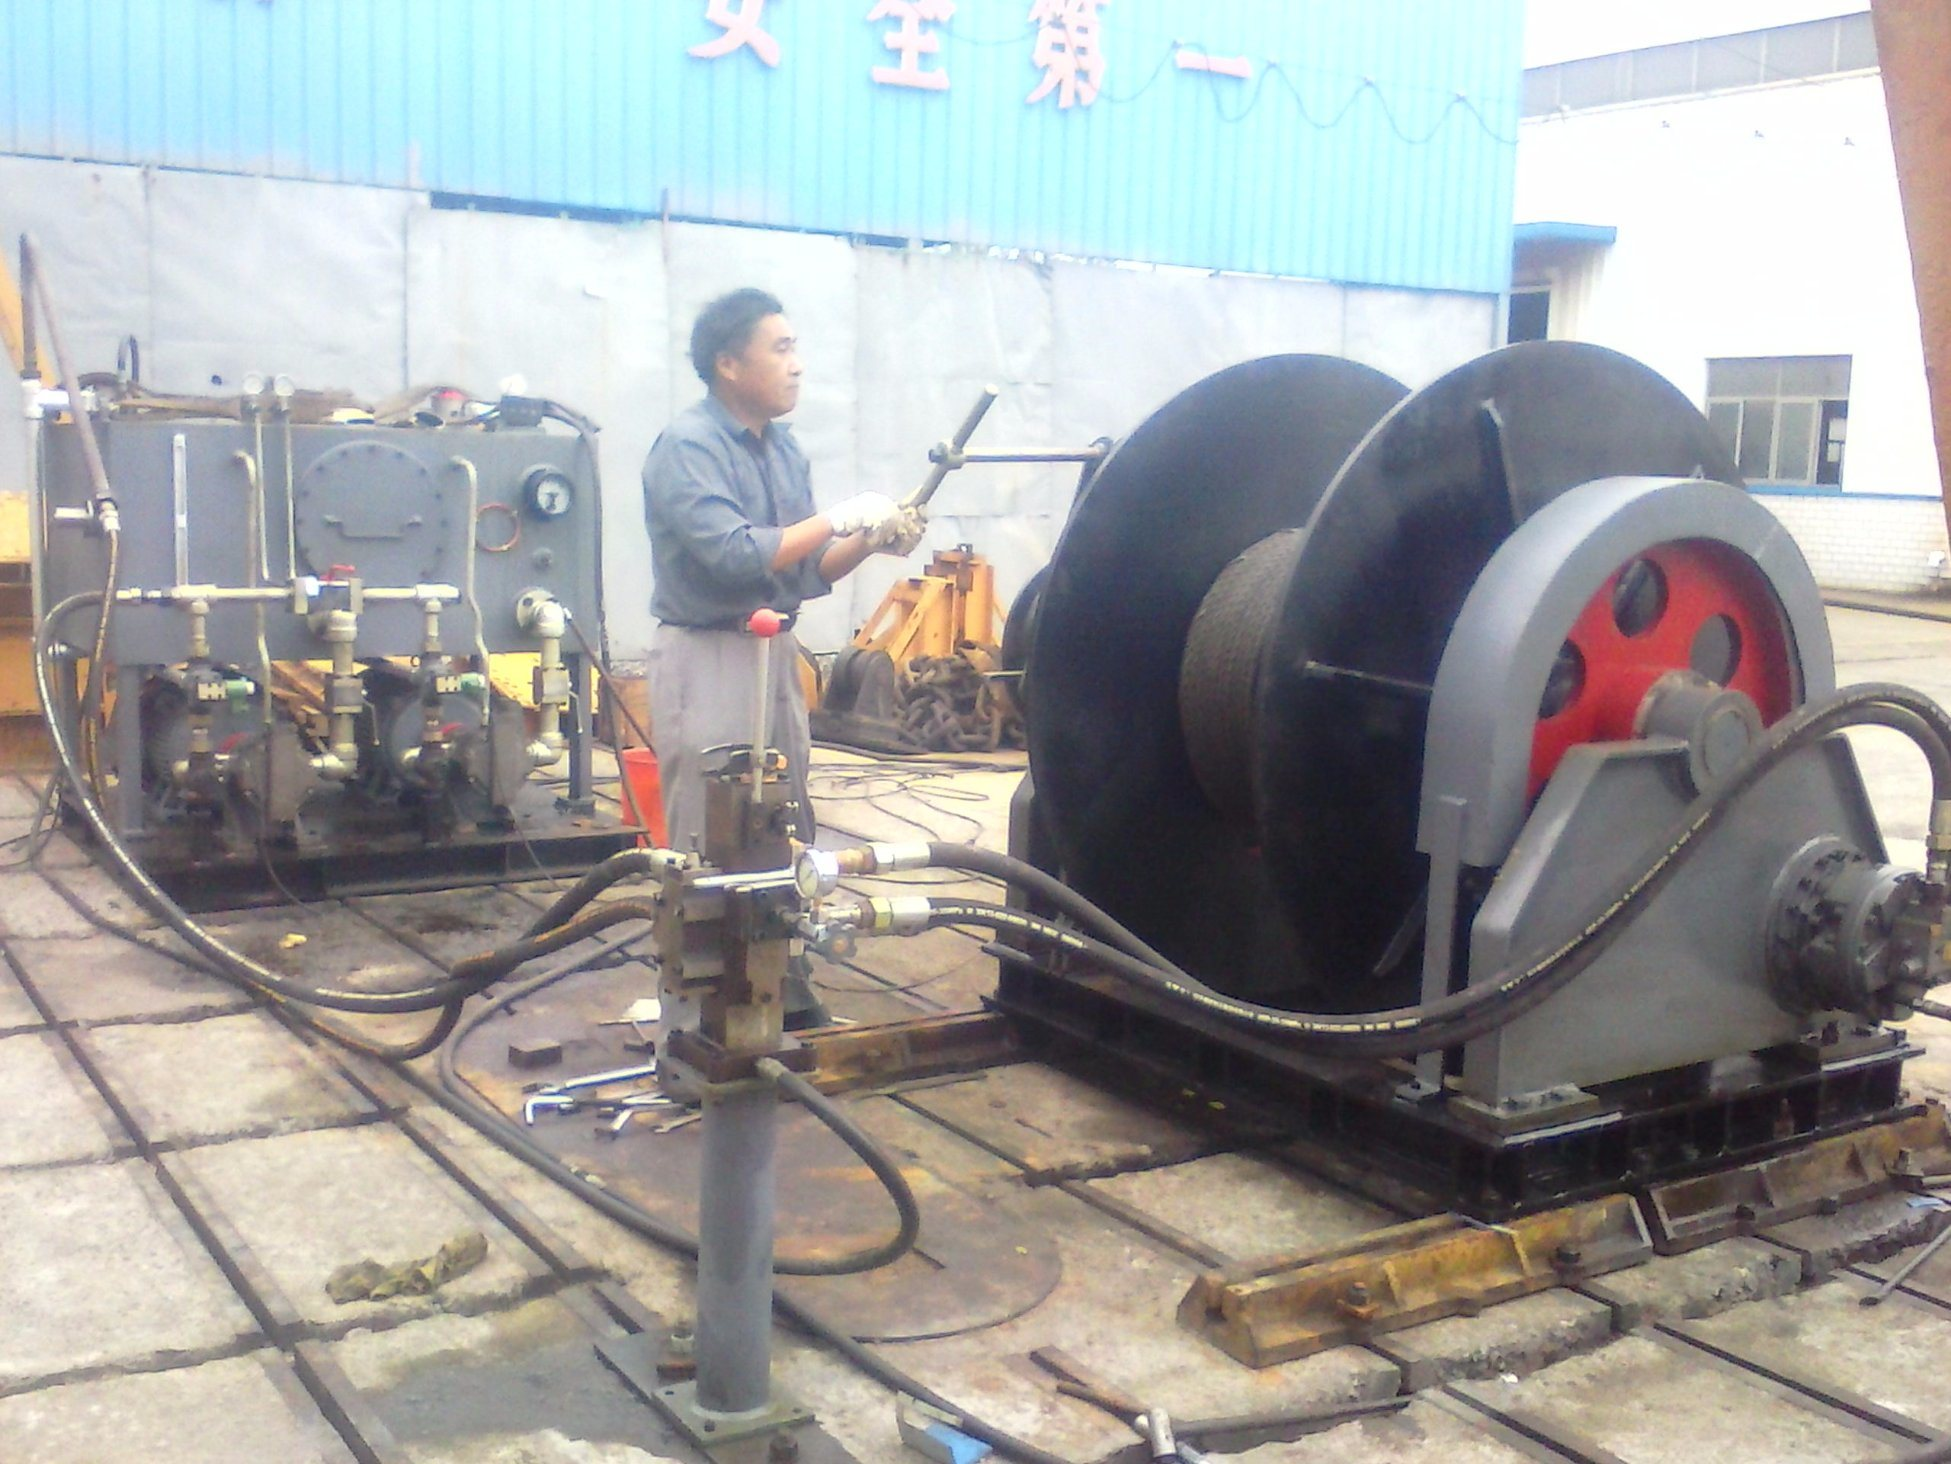 Electric Windlass for Boat, Slip Way, Ship, Dry Dock Electric Winches